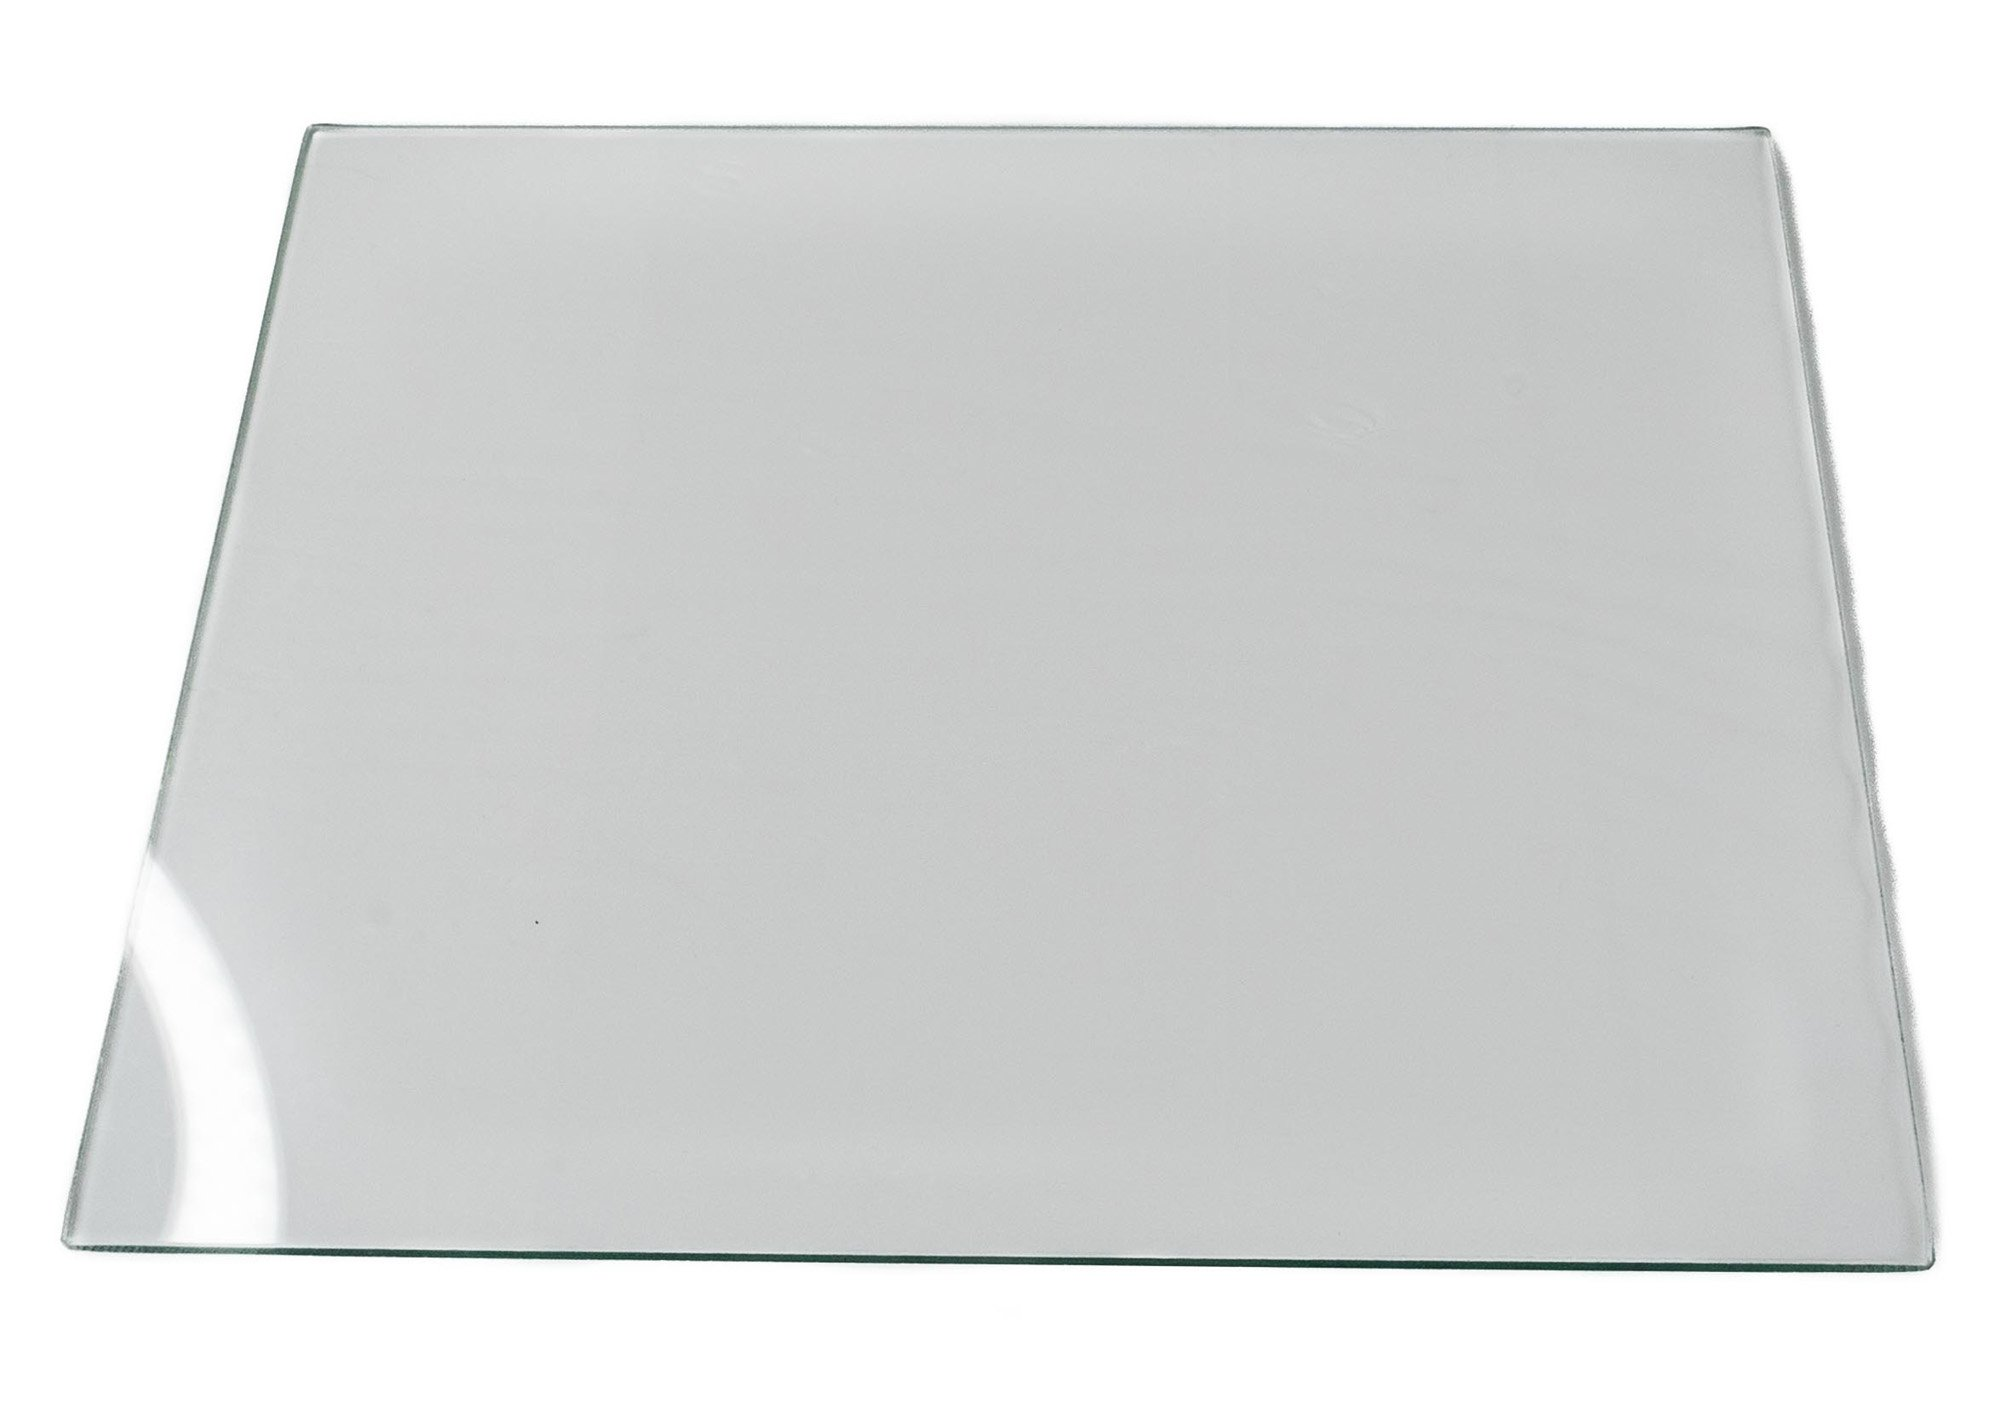 Outer Glass Plate for IBI Vertical Electrophoresis System IB62000